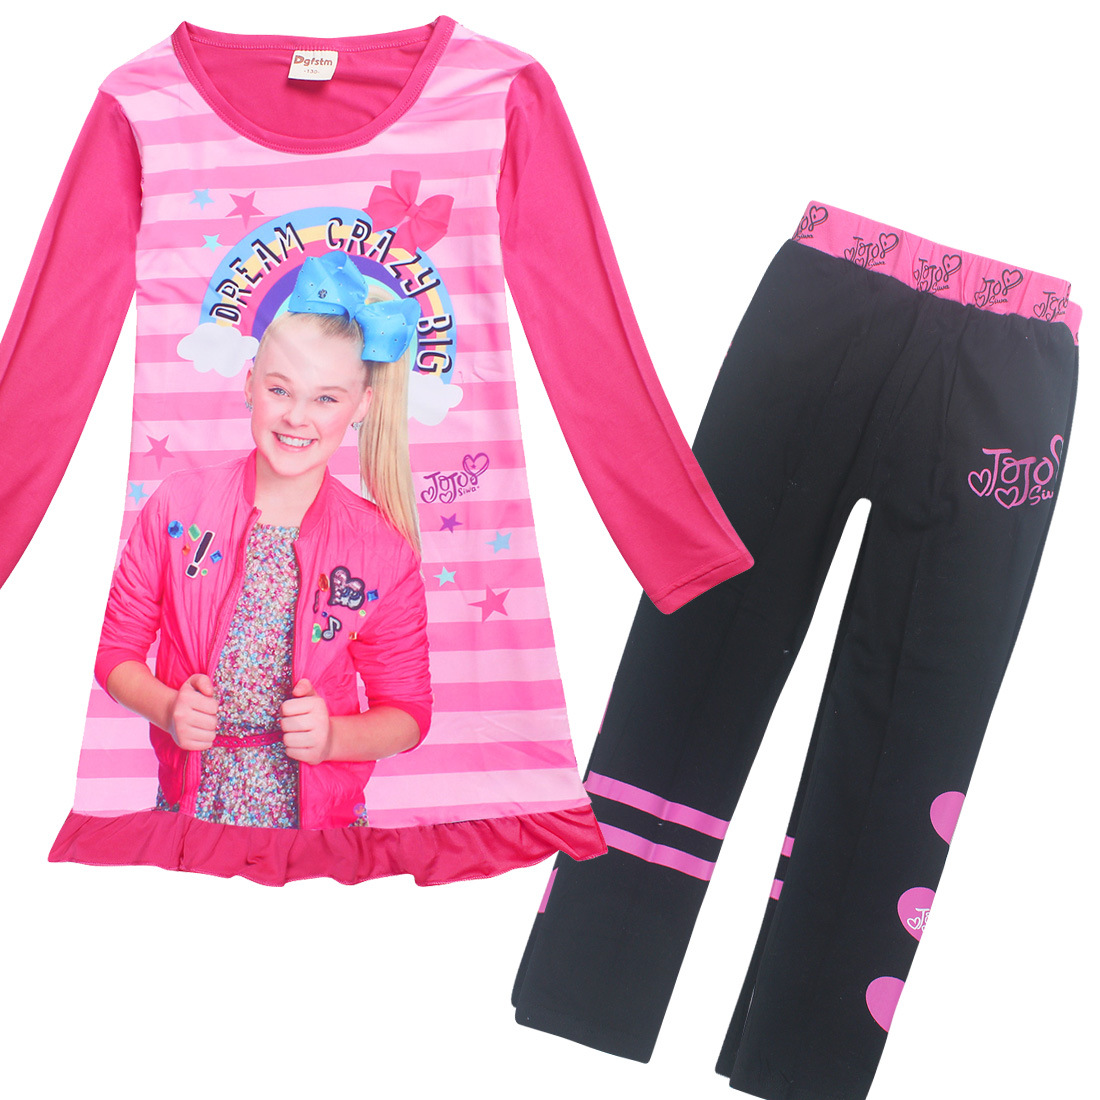 e3756a64e 2018 Pajamas for Girls Long Sleeve Dresses Cotton Pants Jojo Siwa Clothing  Set Childrens Fancy Dress Moana Trolls Teens Clothes